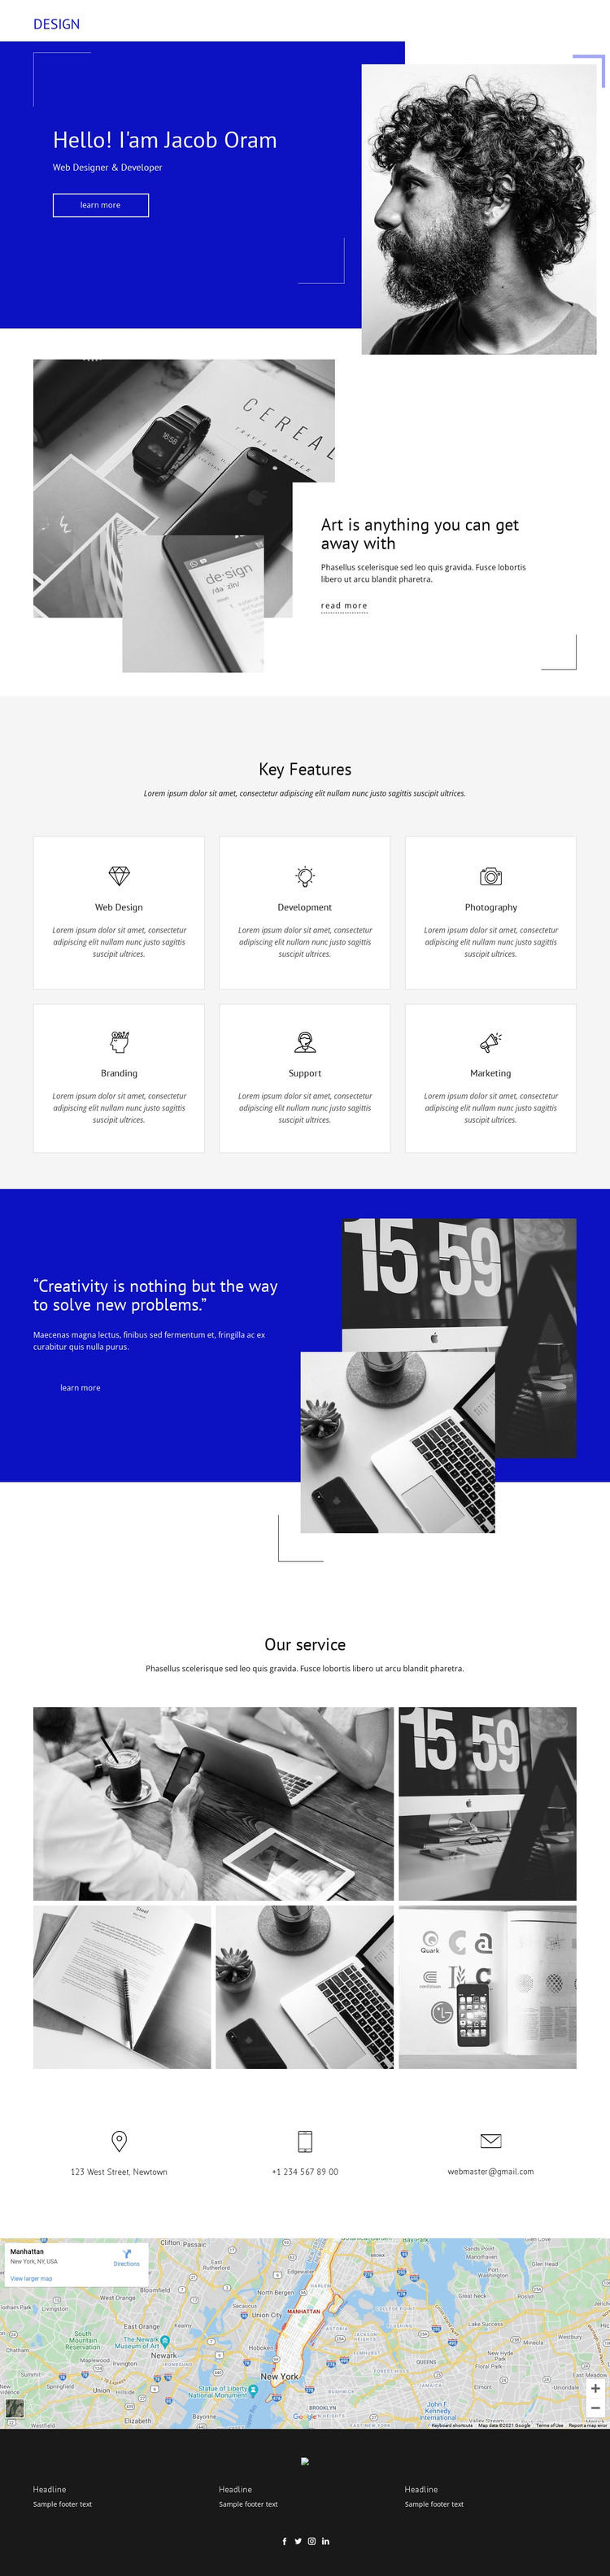 Jacob Oram Portfolio Web Design